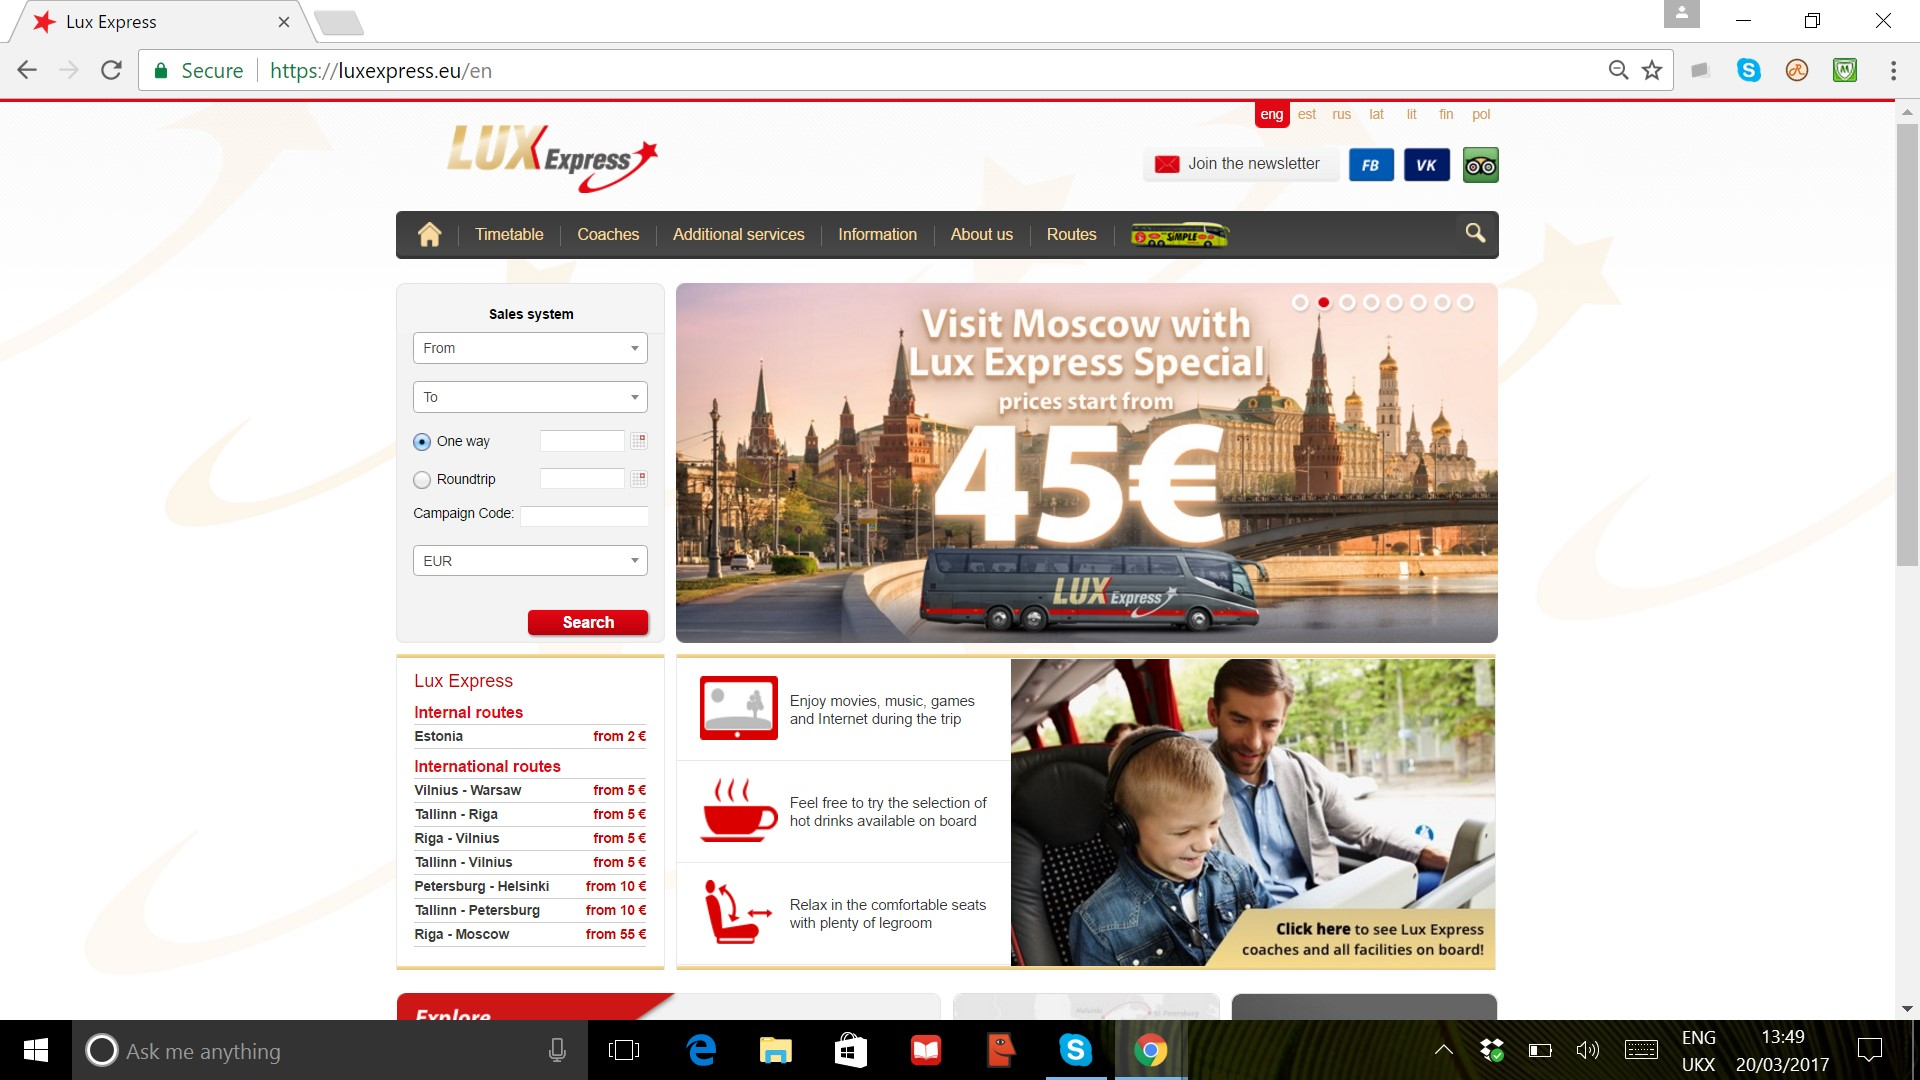 LUX Express Home Page